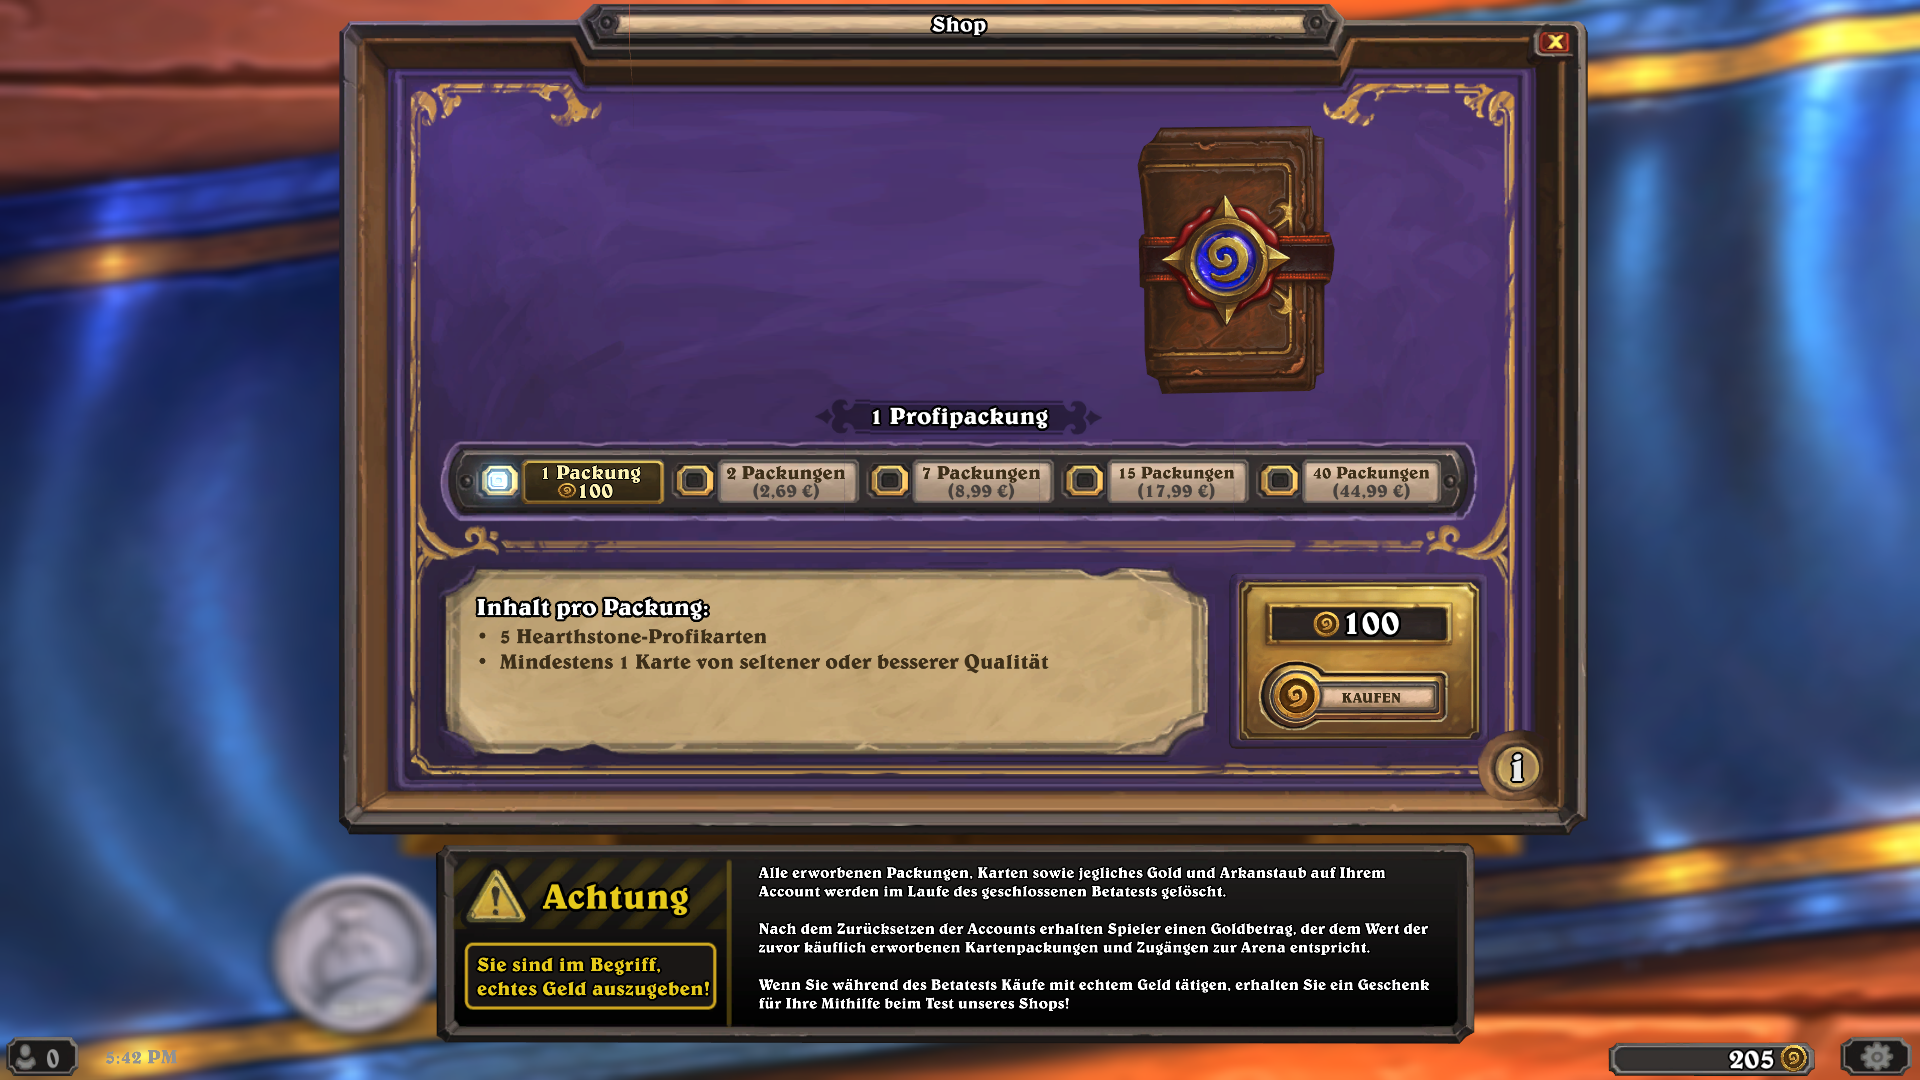 how to get free pack hearthstone ipad